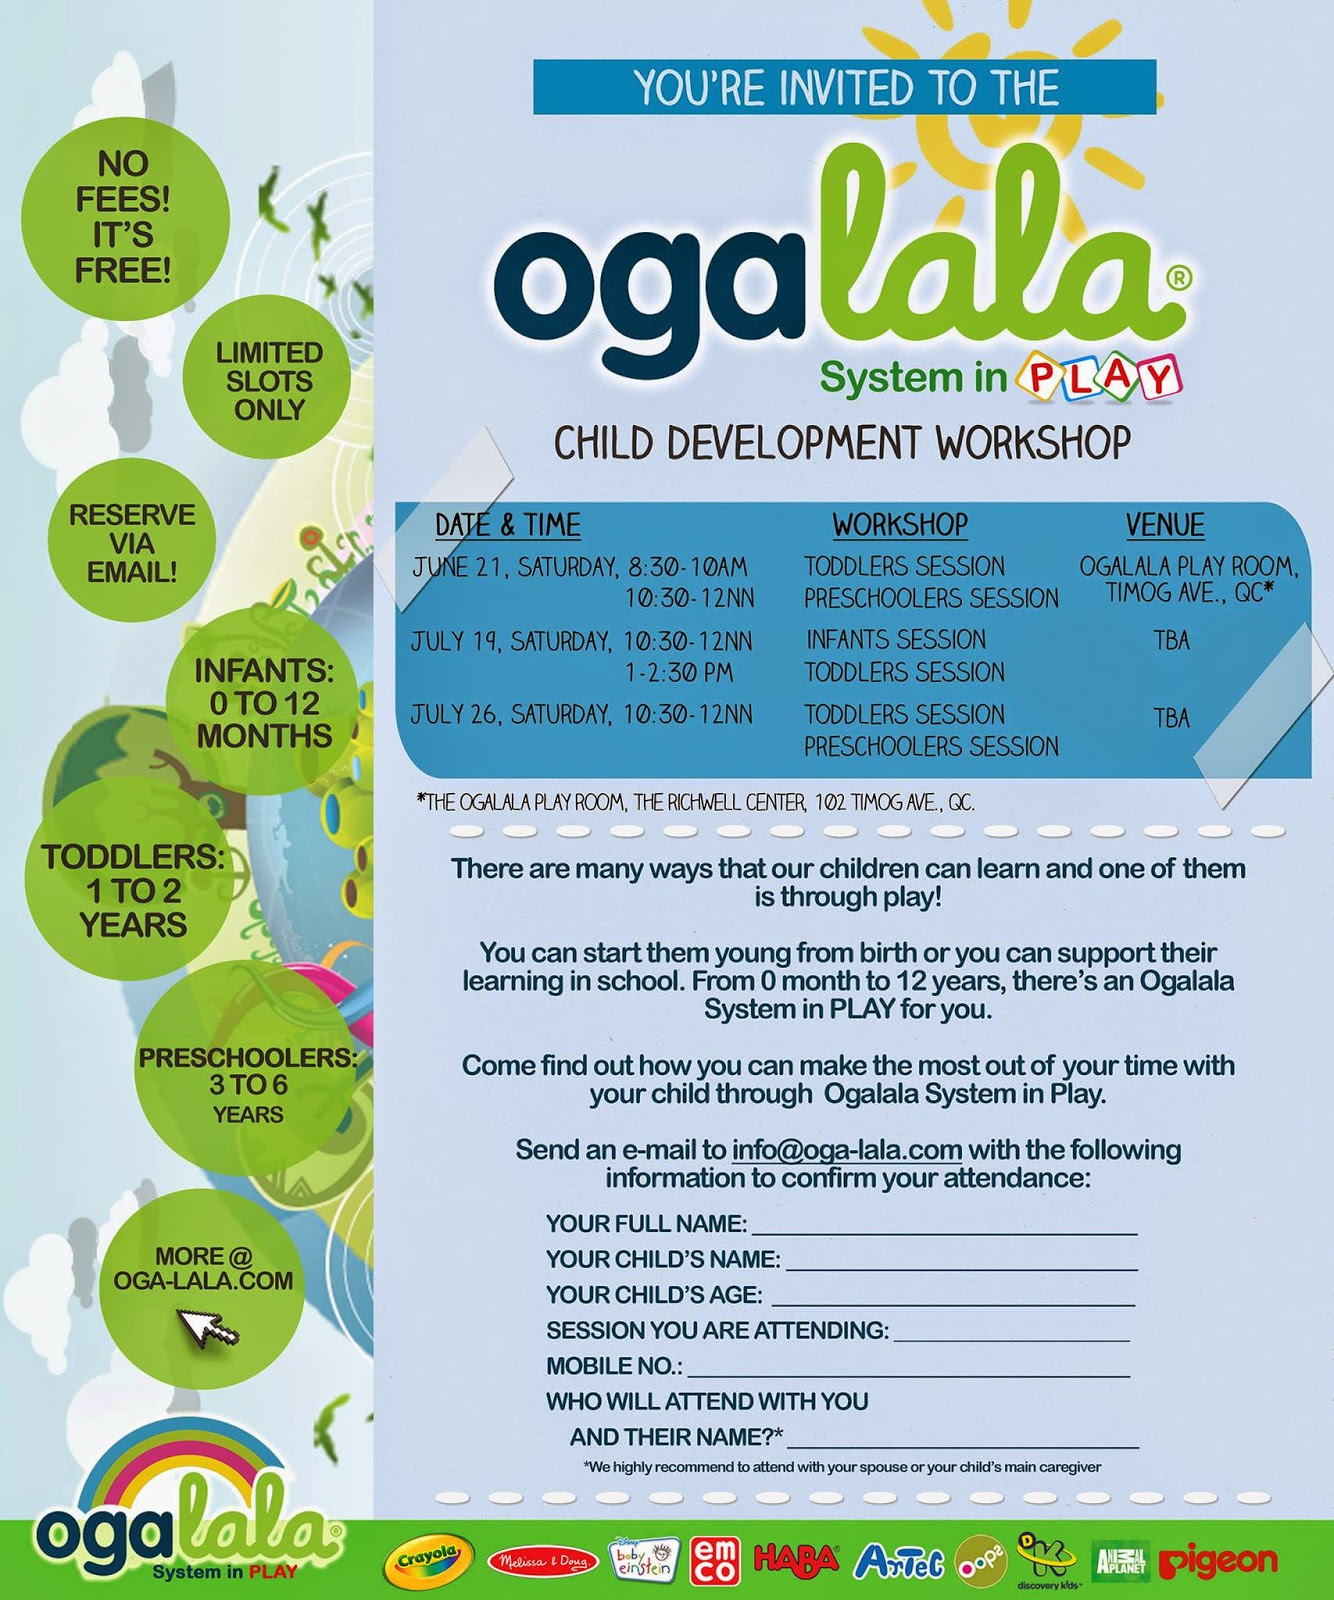 We Had Fun At The Ogalala (System In Play) Workshop!